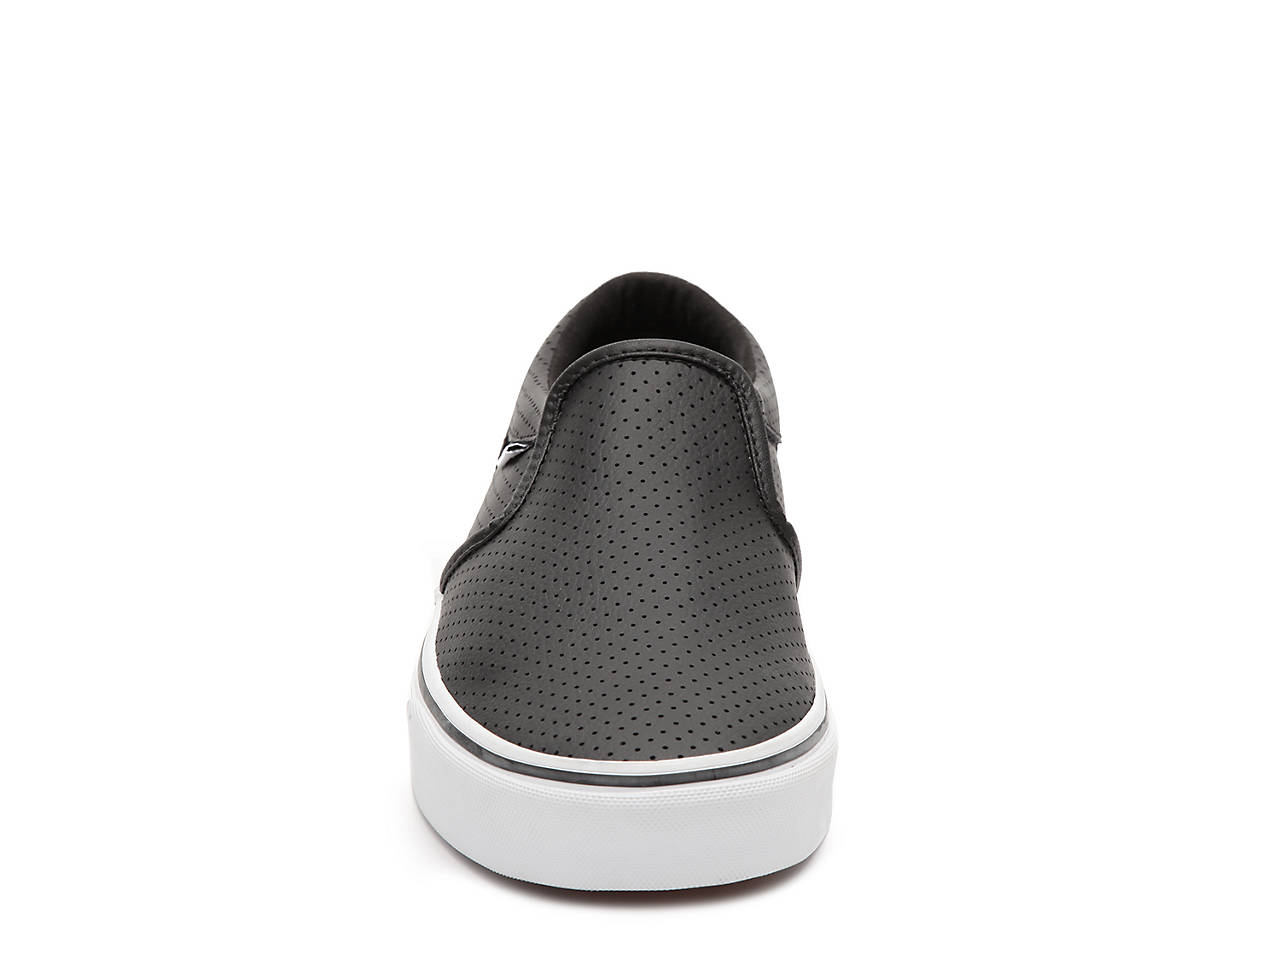 b57b8f8fe9e7 Vans Asher Perforated Leather Slip-On Sneaker - Men s Men s Shoes